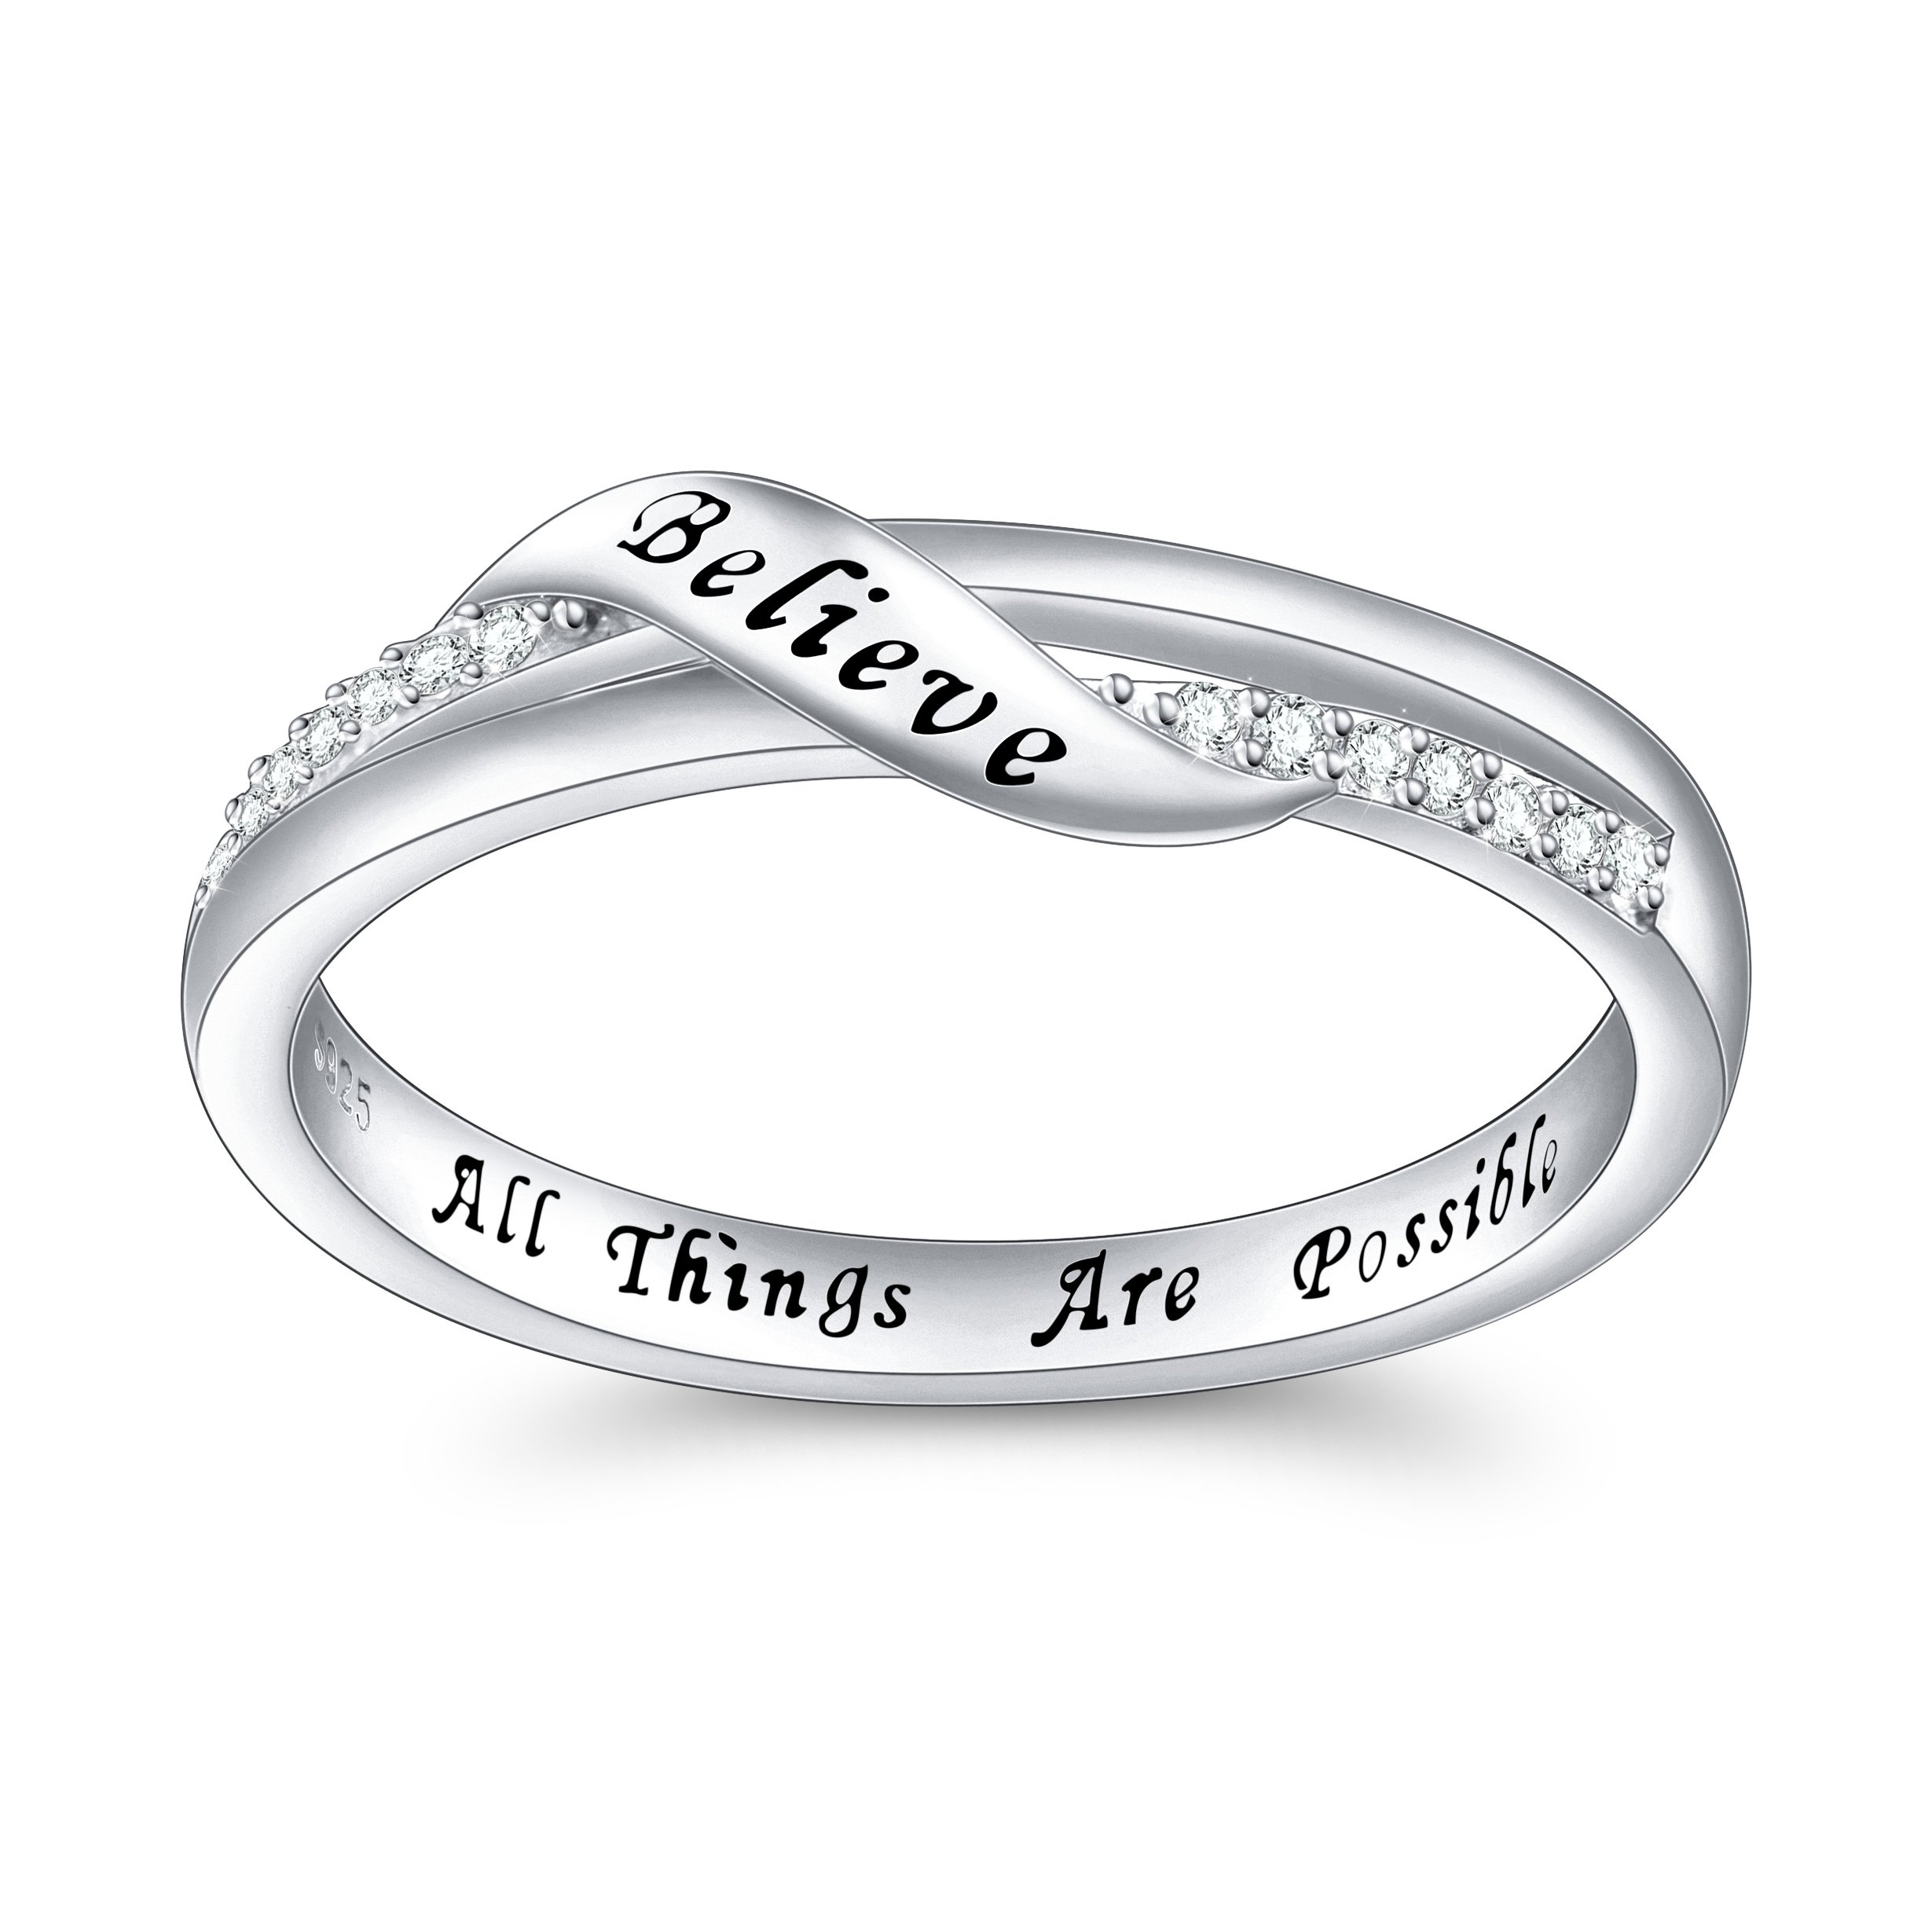 DAOCHONG Inspirational Jewelry Sterling Silver Engraved Believe All Things are Possible Band Ring for Women Girl, Size 6-8 (7)